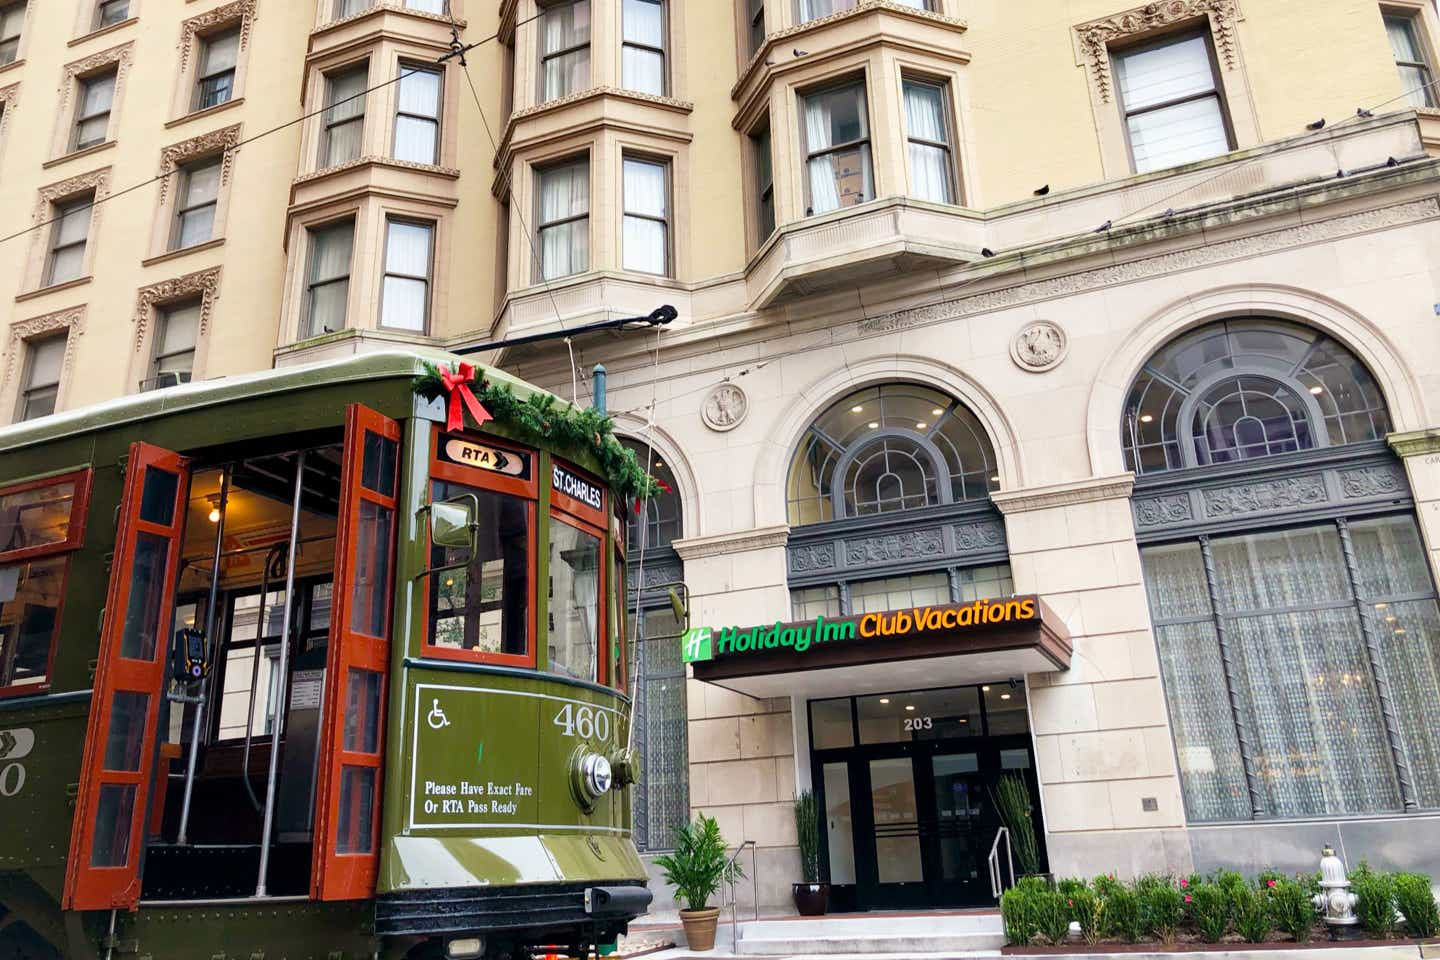 A green trolley decorated for the holidays stops in front of our resort in New Orleans, Louisiana.